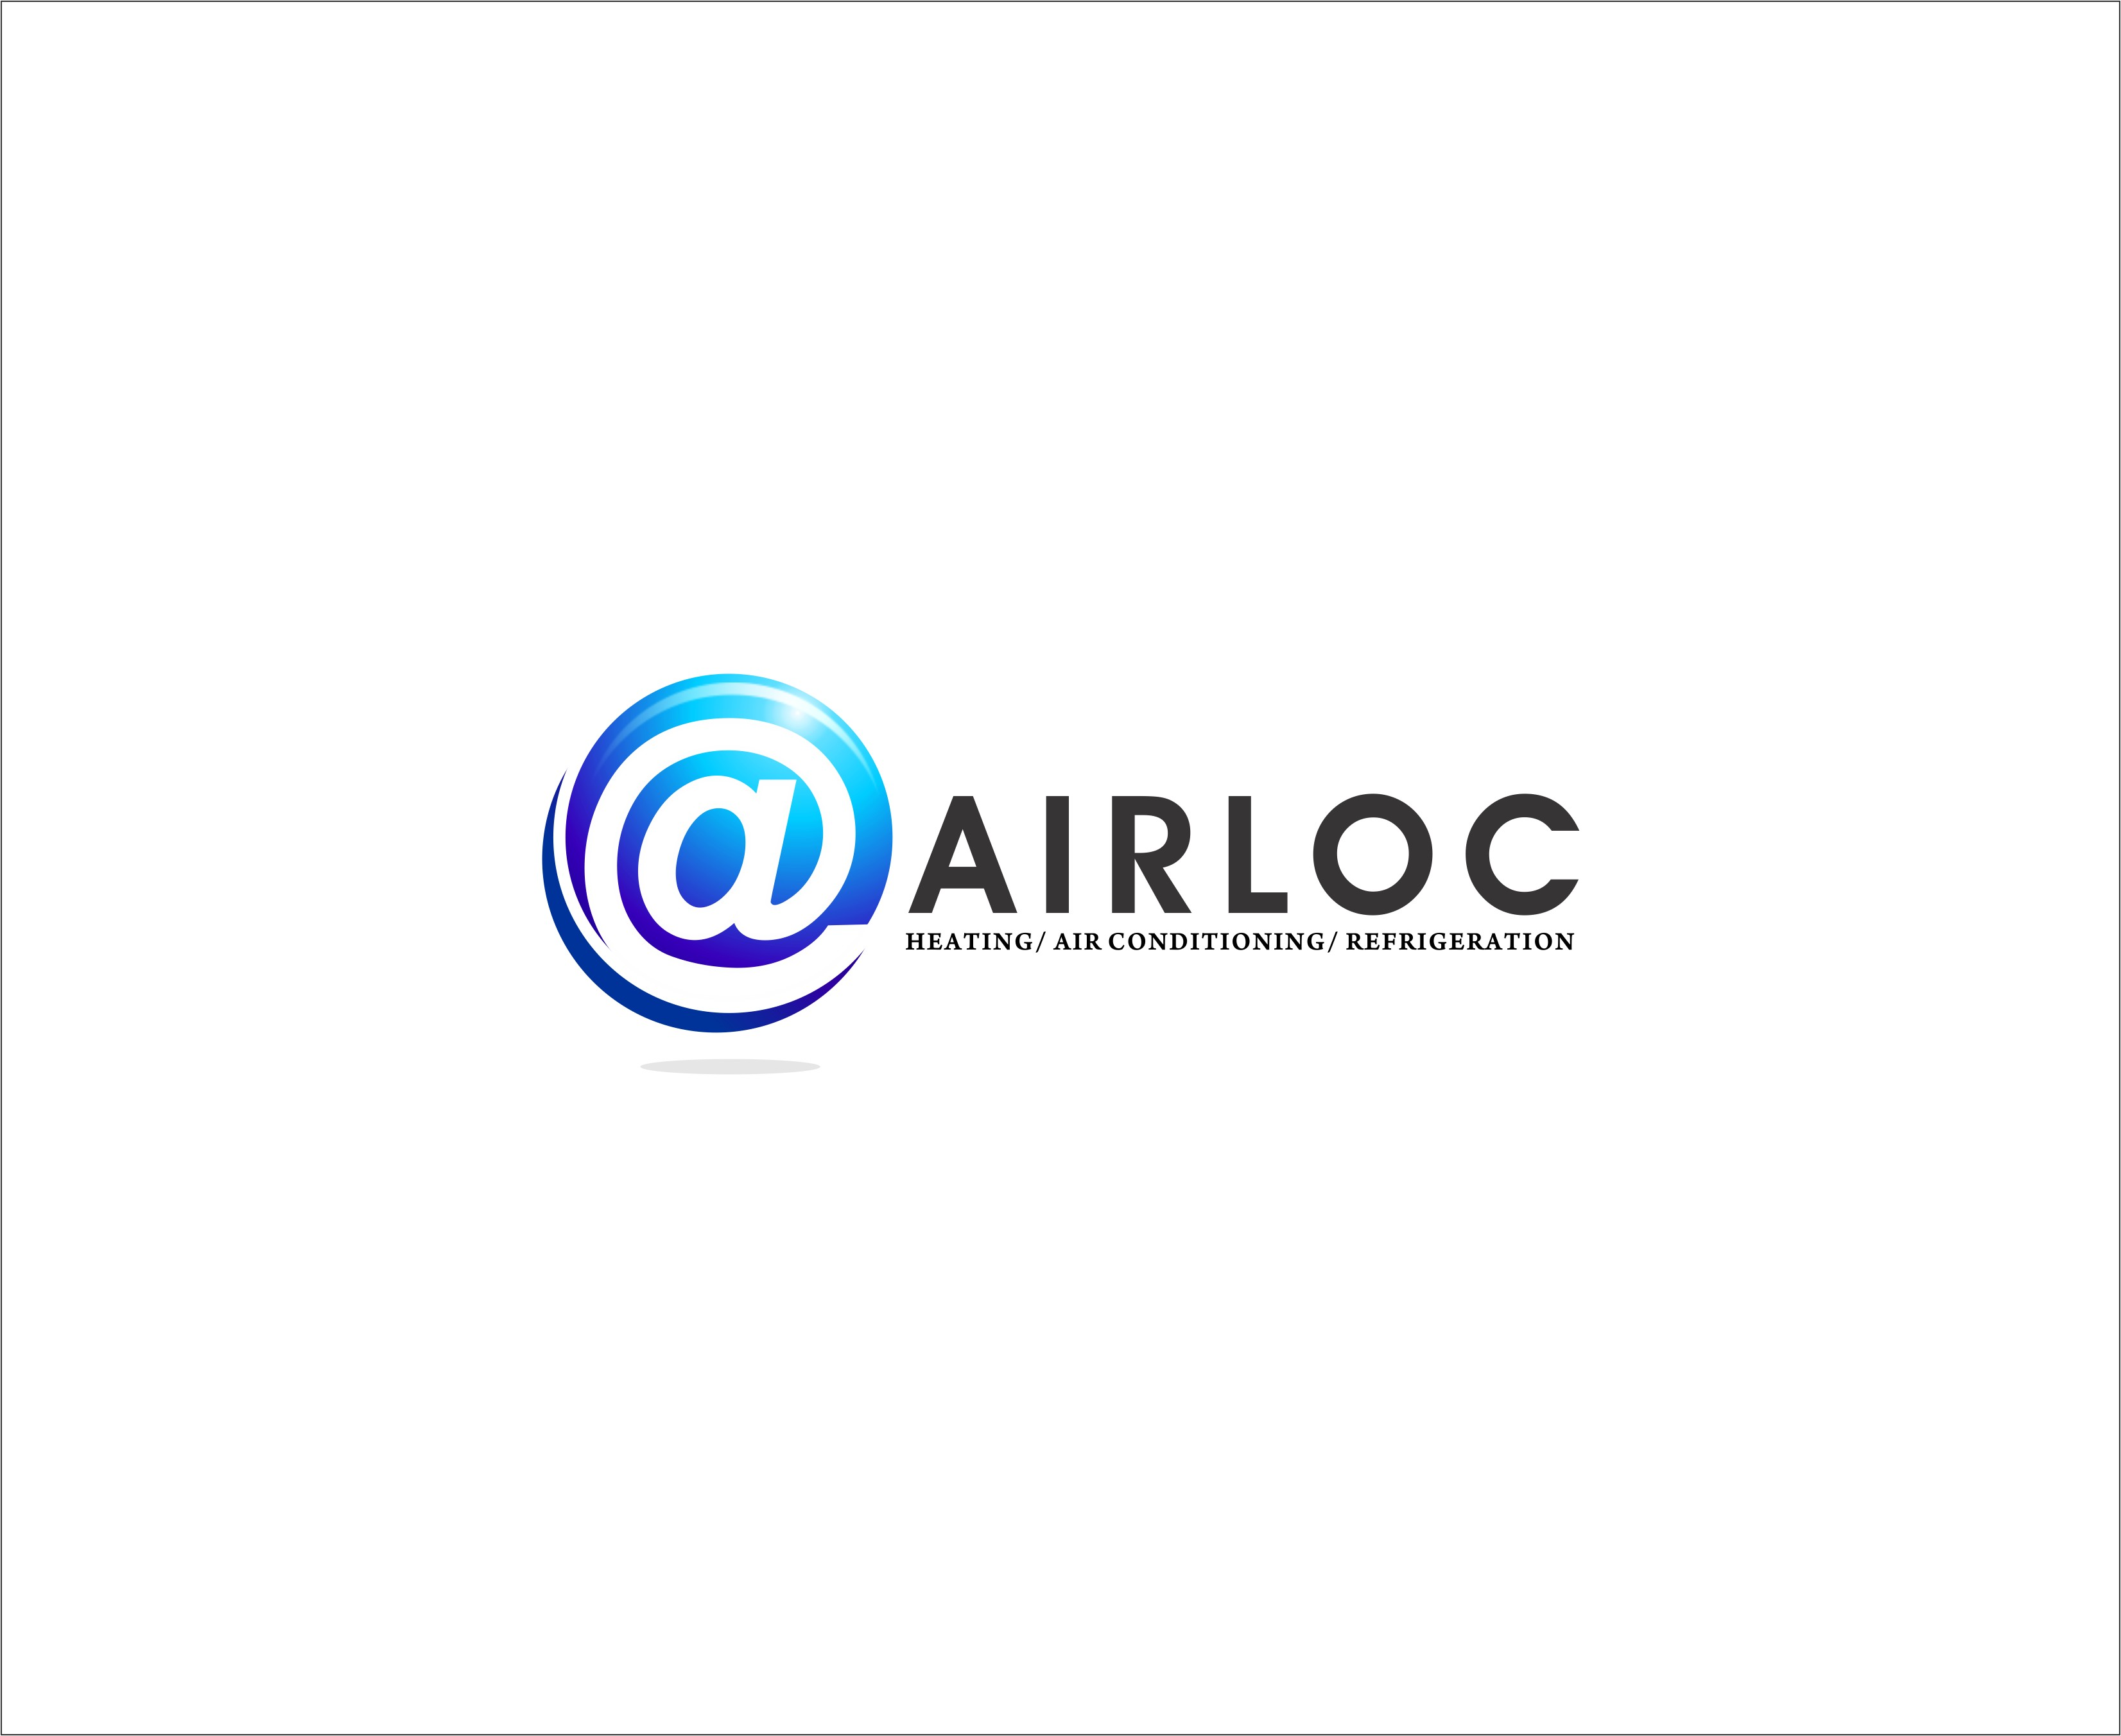 Logo Design by Mhon_Rose - Entry No. 47 in the Logo Design Contest Airloc Logo Design.